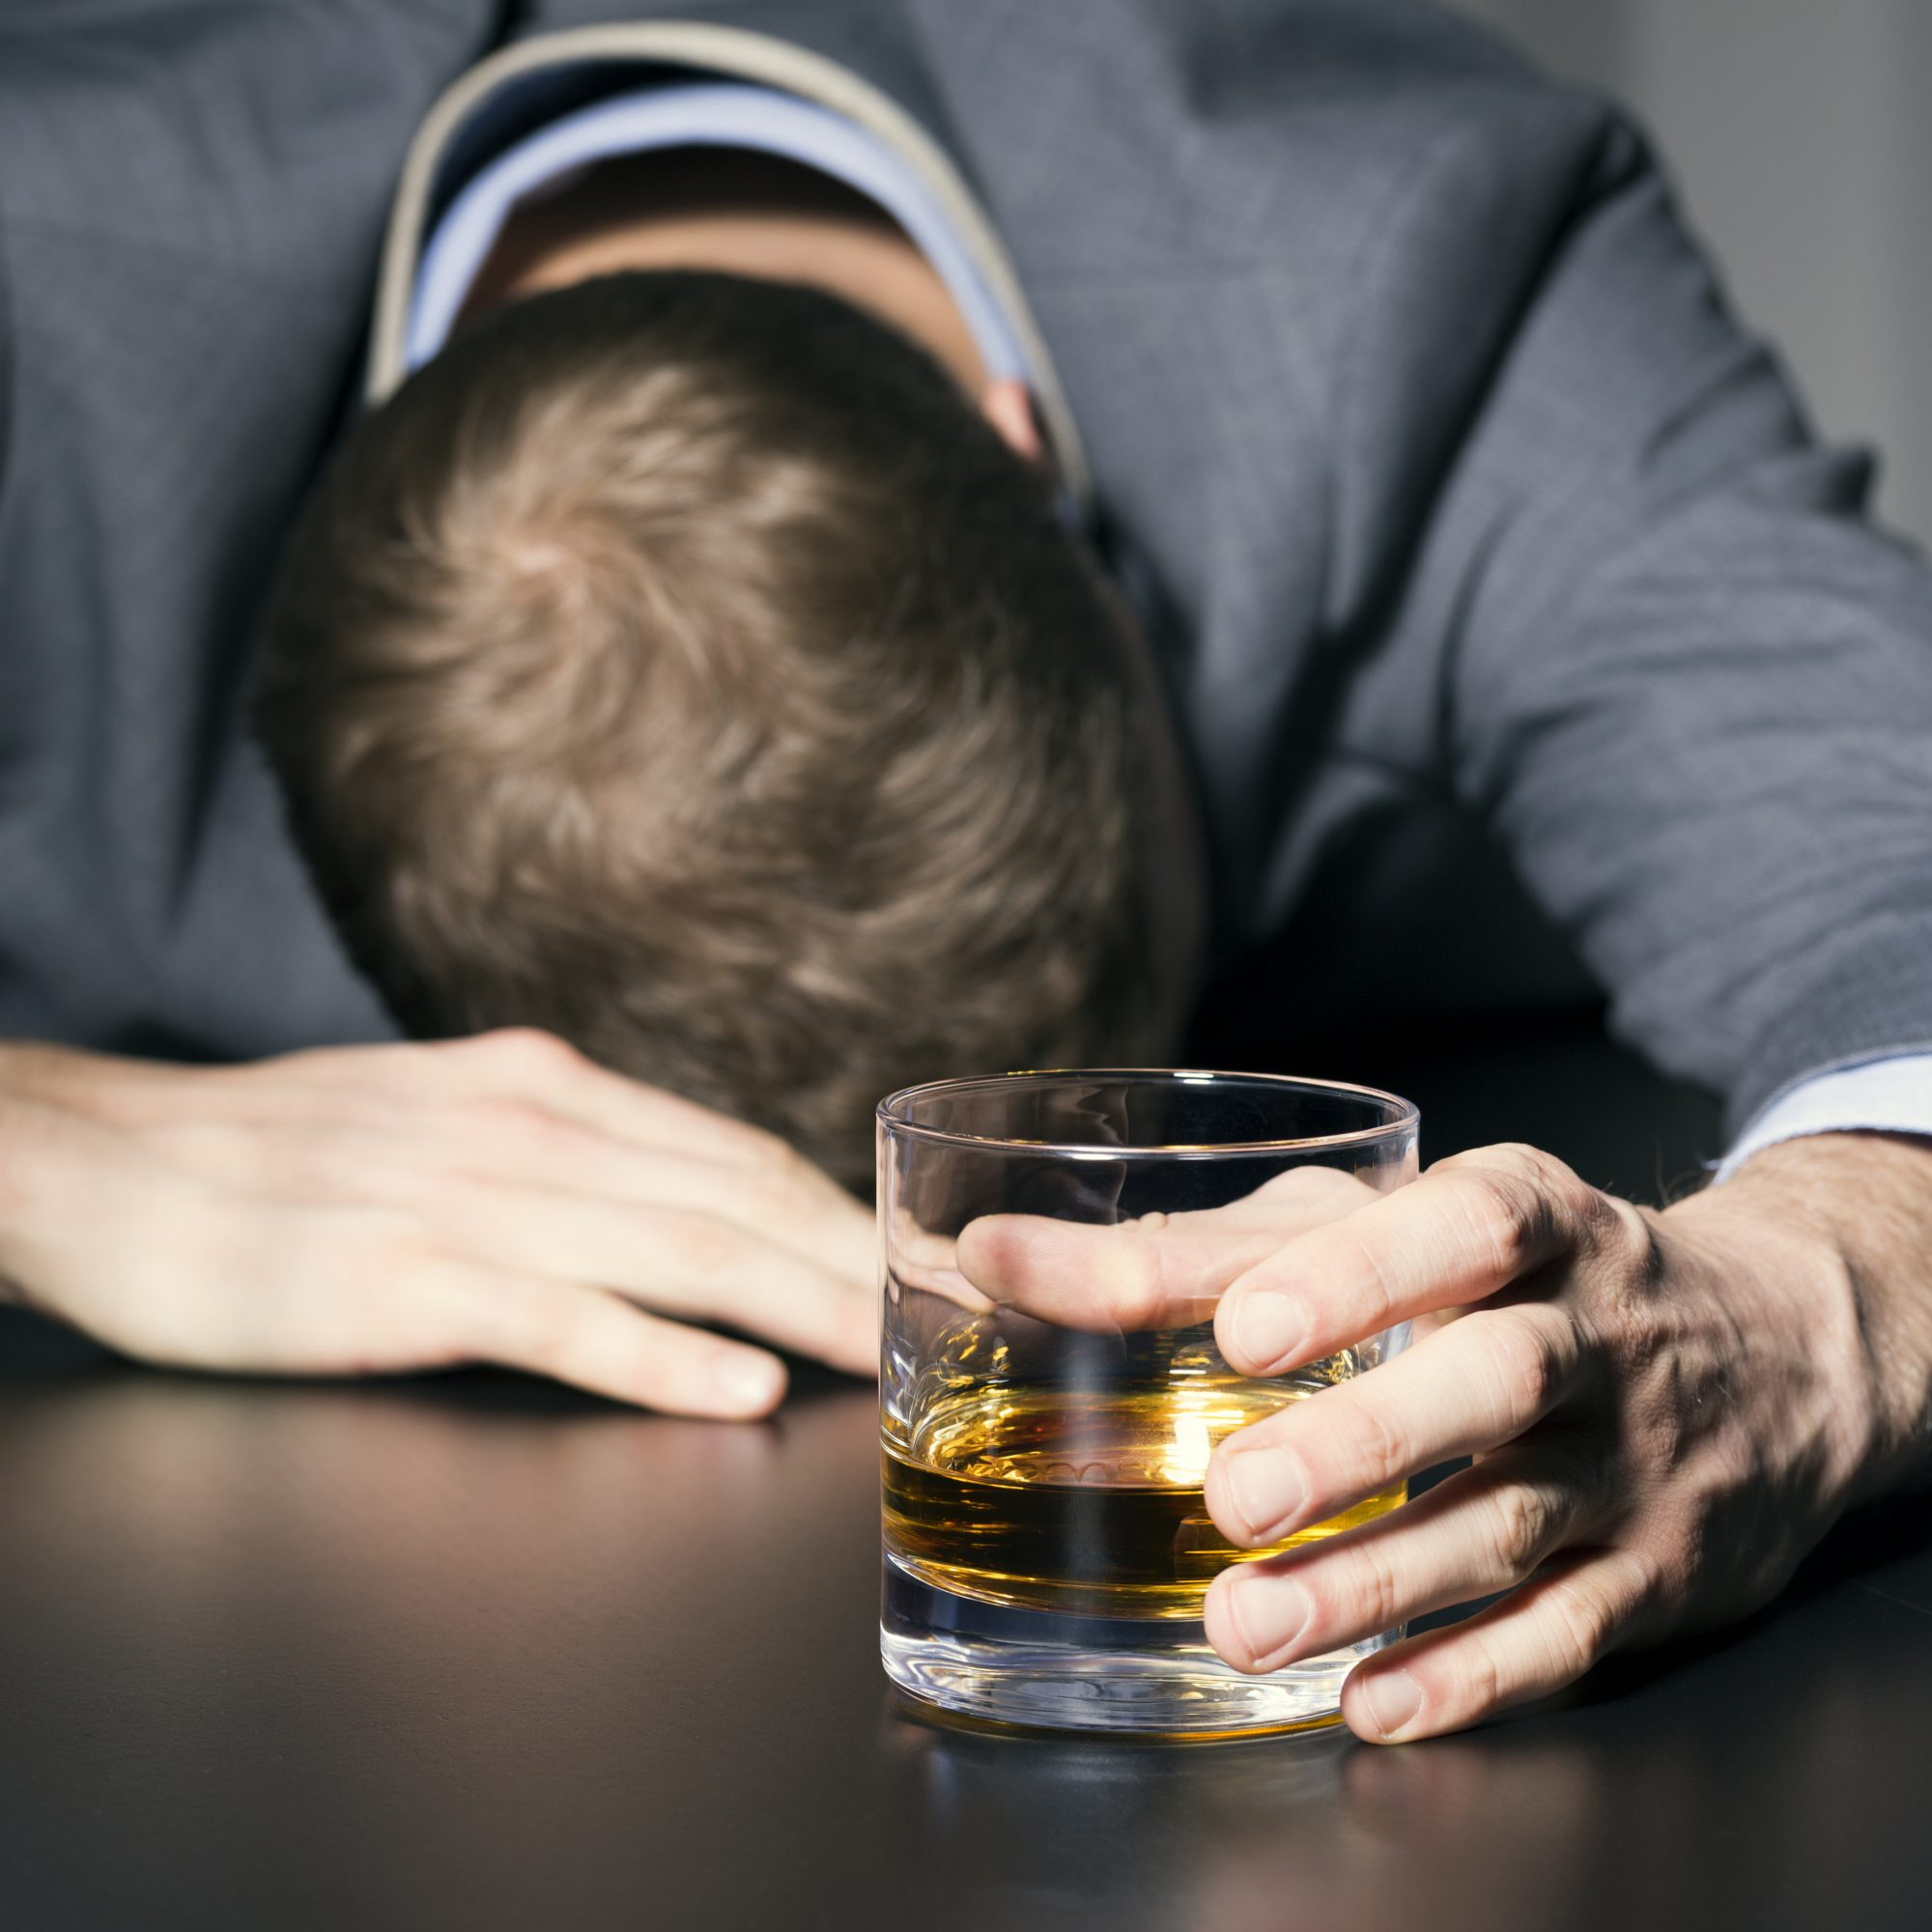 Average Person Spends Two Years of Their Life Hungover, Finds Study